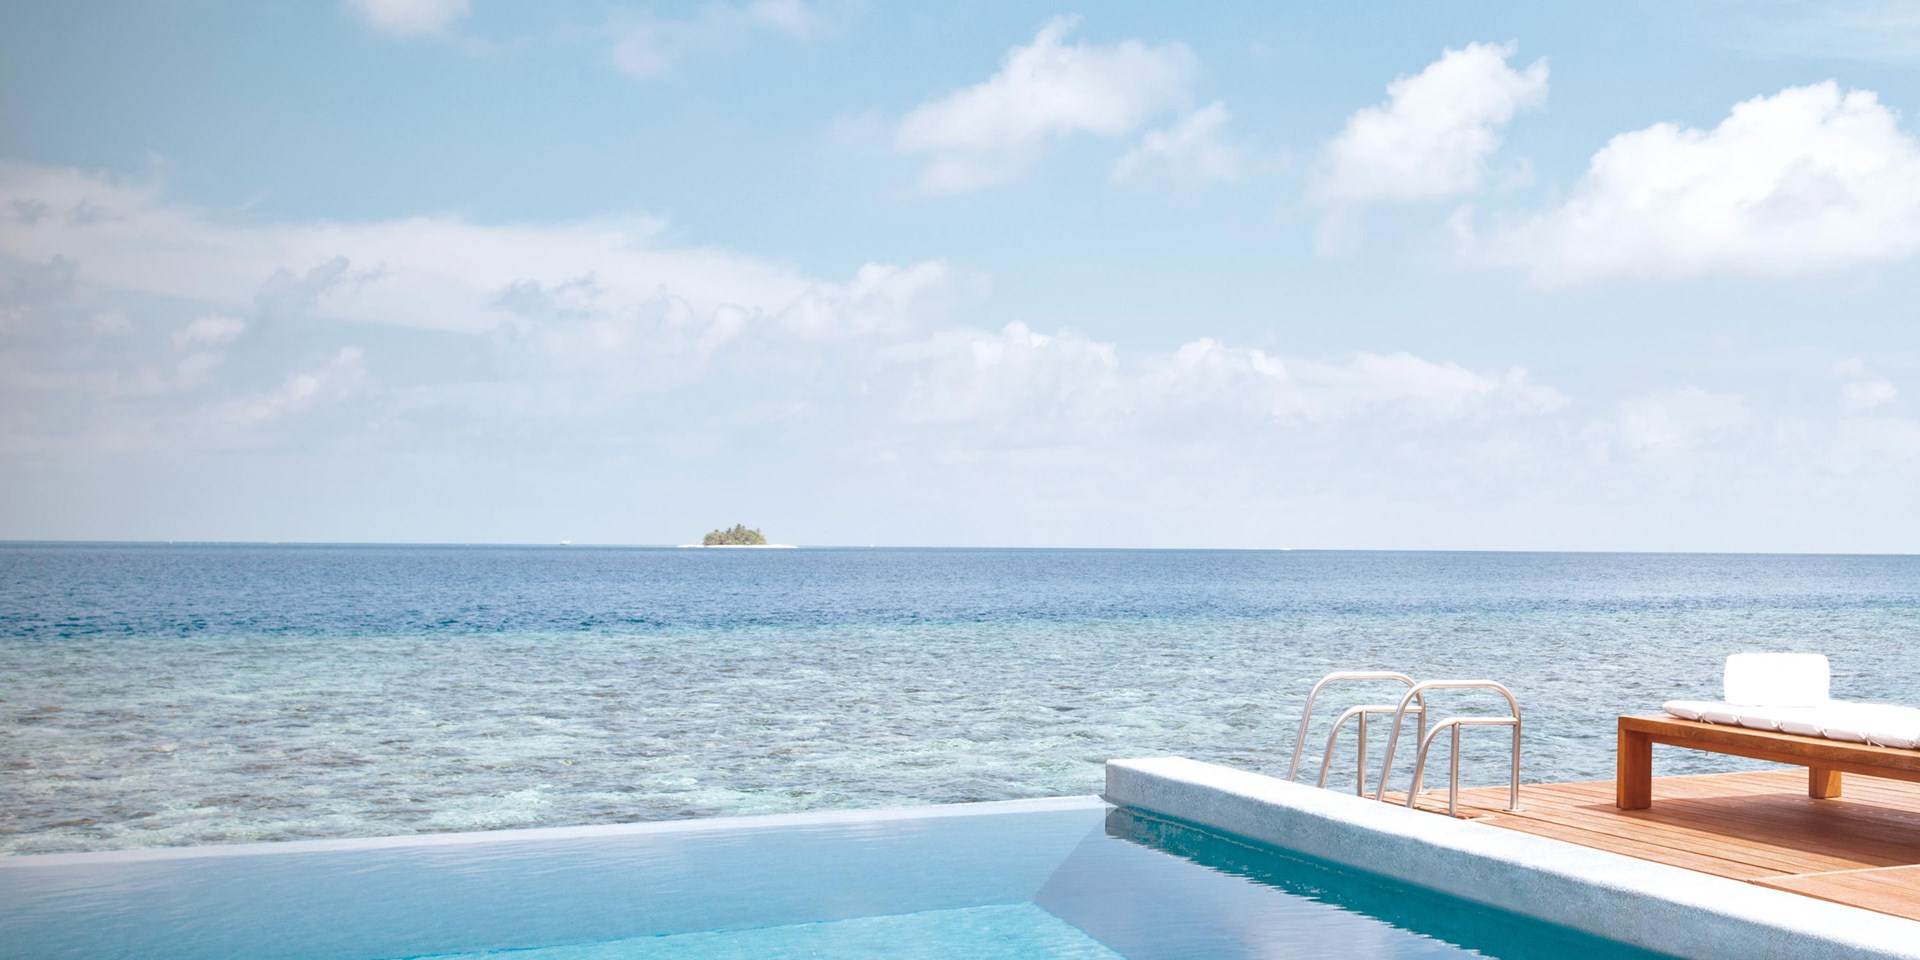 A swimming pool and sun loungers next to the sea in the W Maldives resort